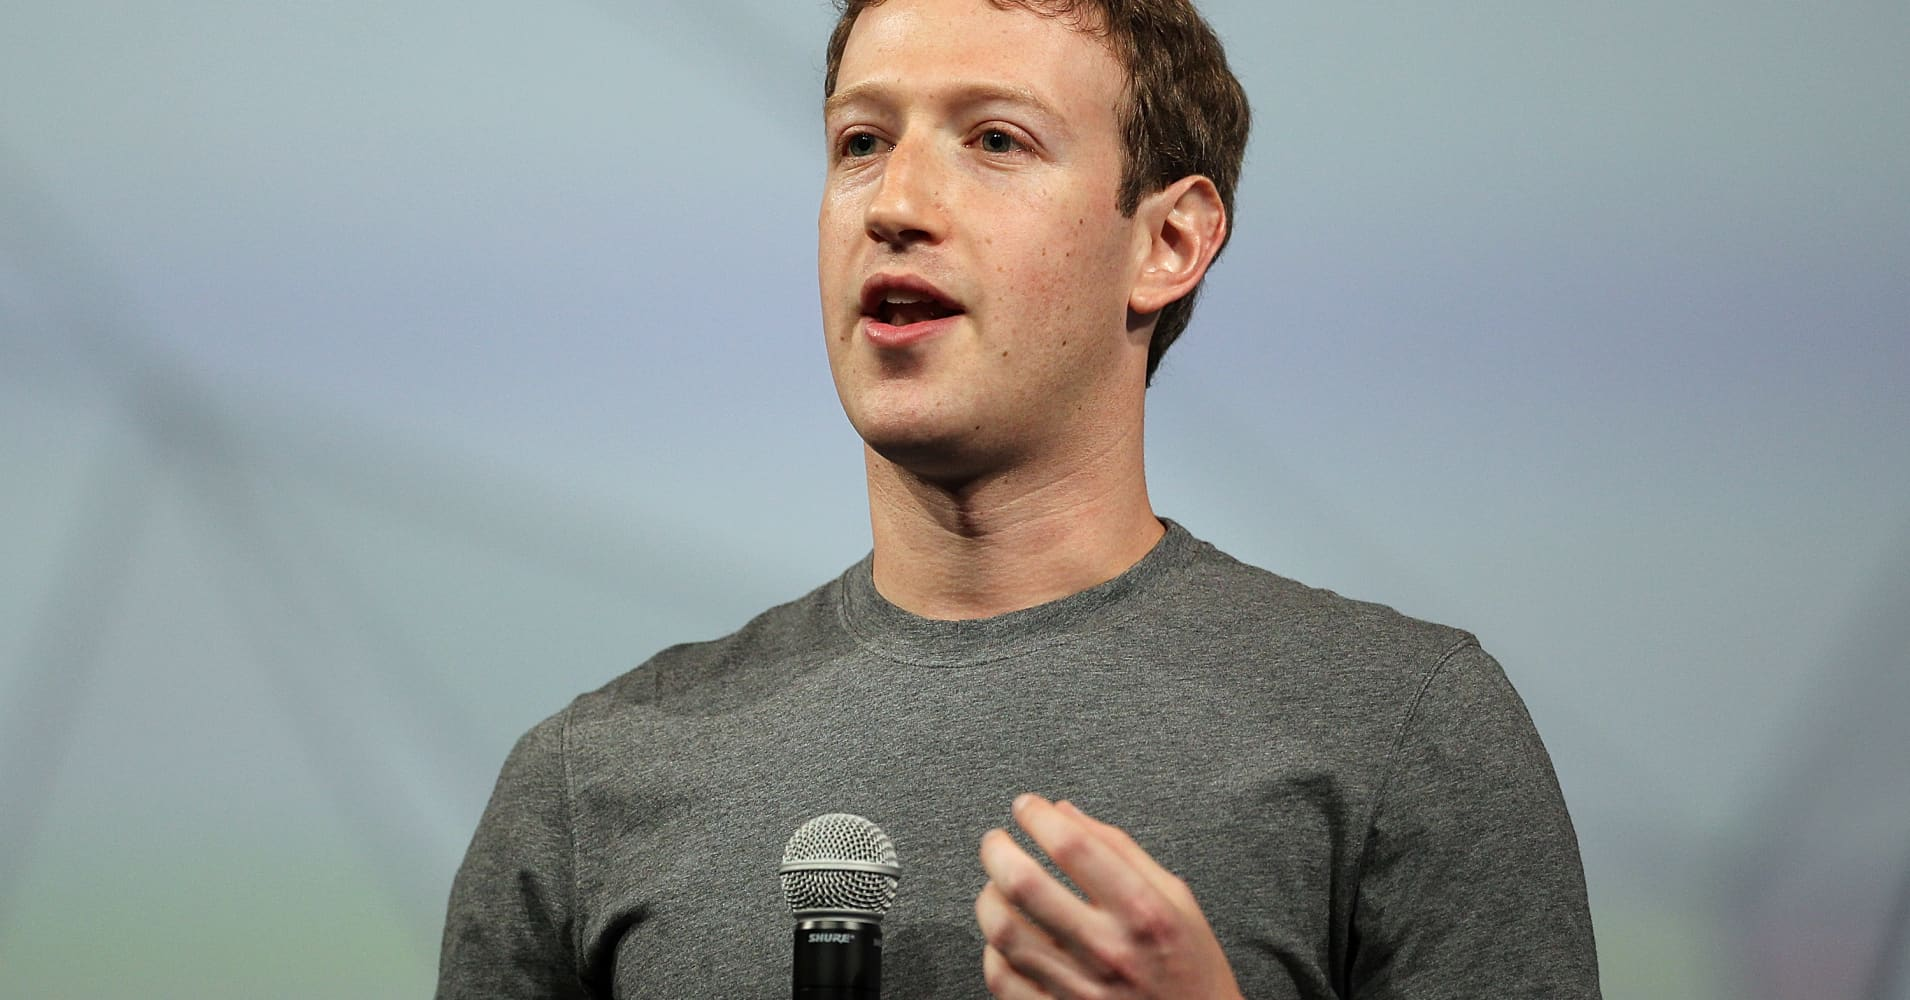 People with these 3 traits make it to the top, says Mark Zuckerberg